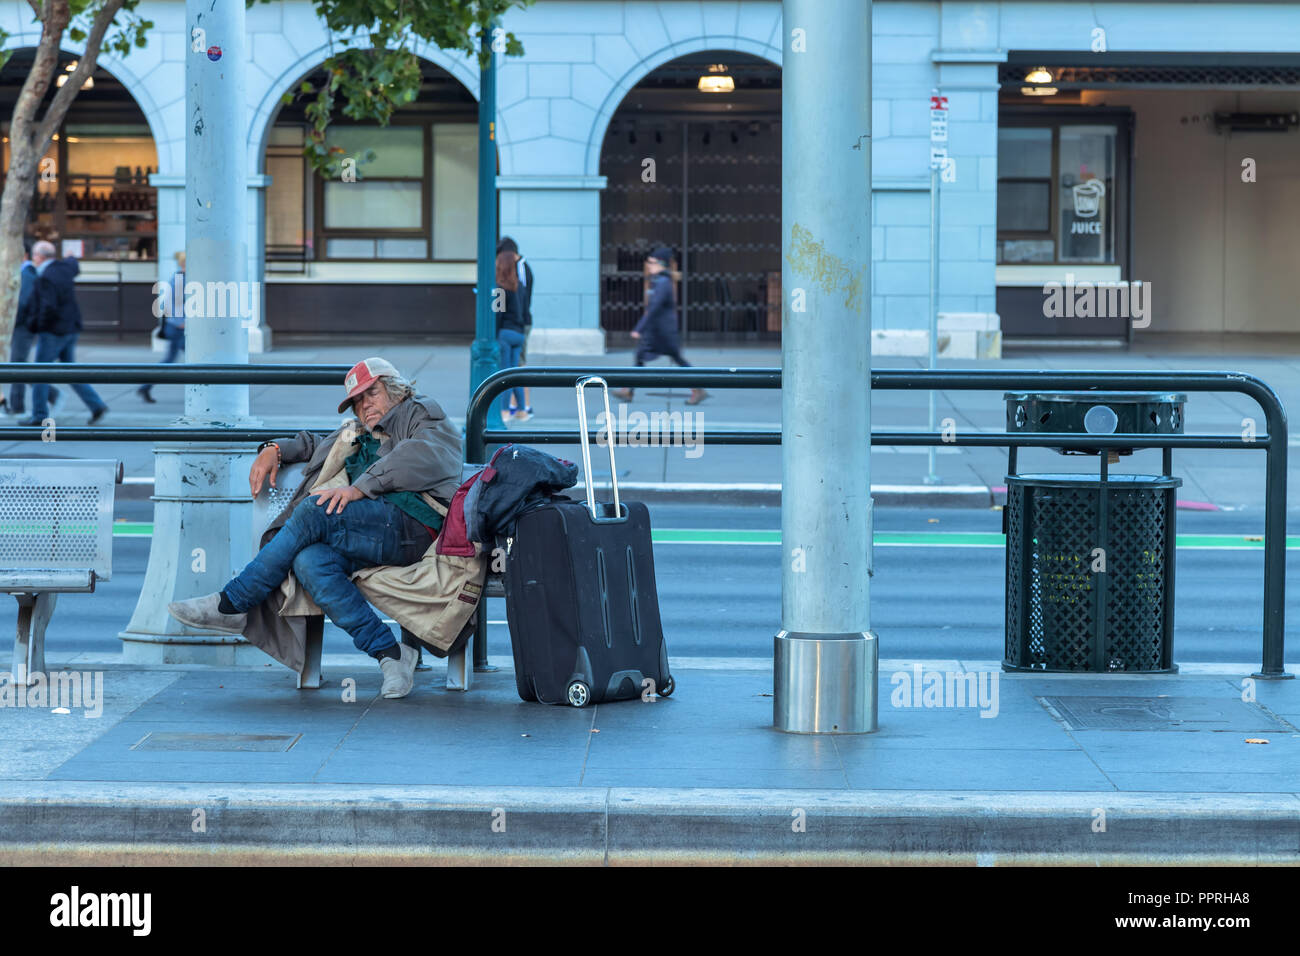 A homeless man with his belongings was sleeping on a bench at the train station in San Francisco, California, United States - Stock Image